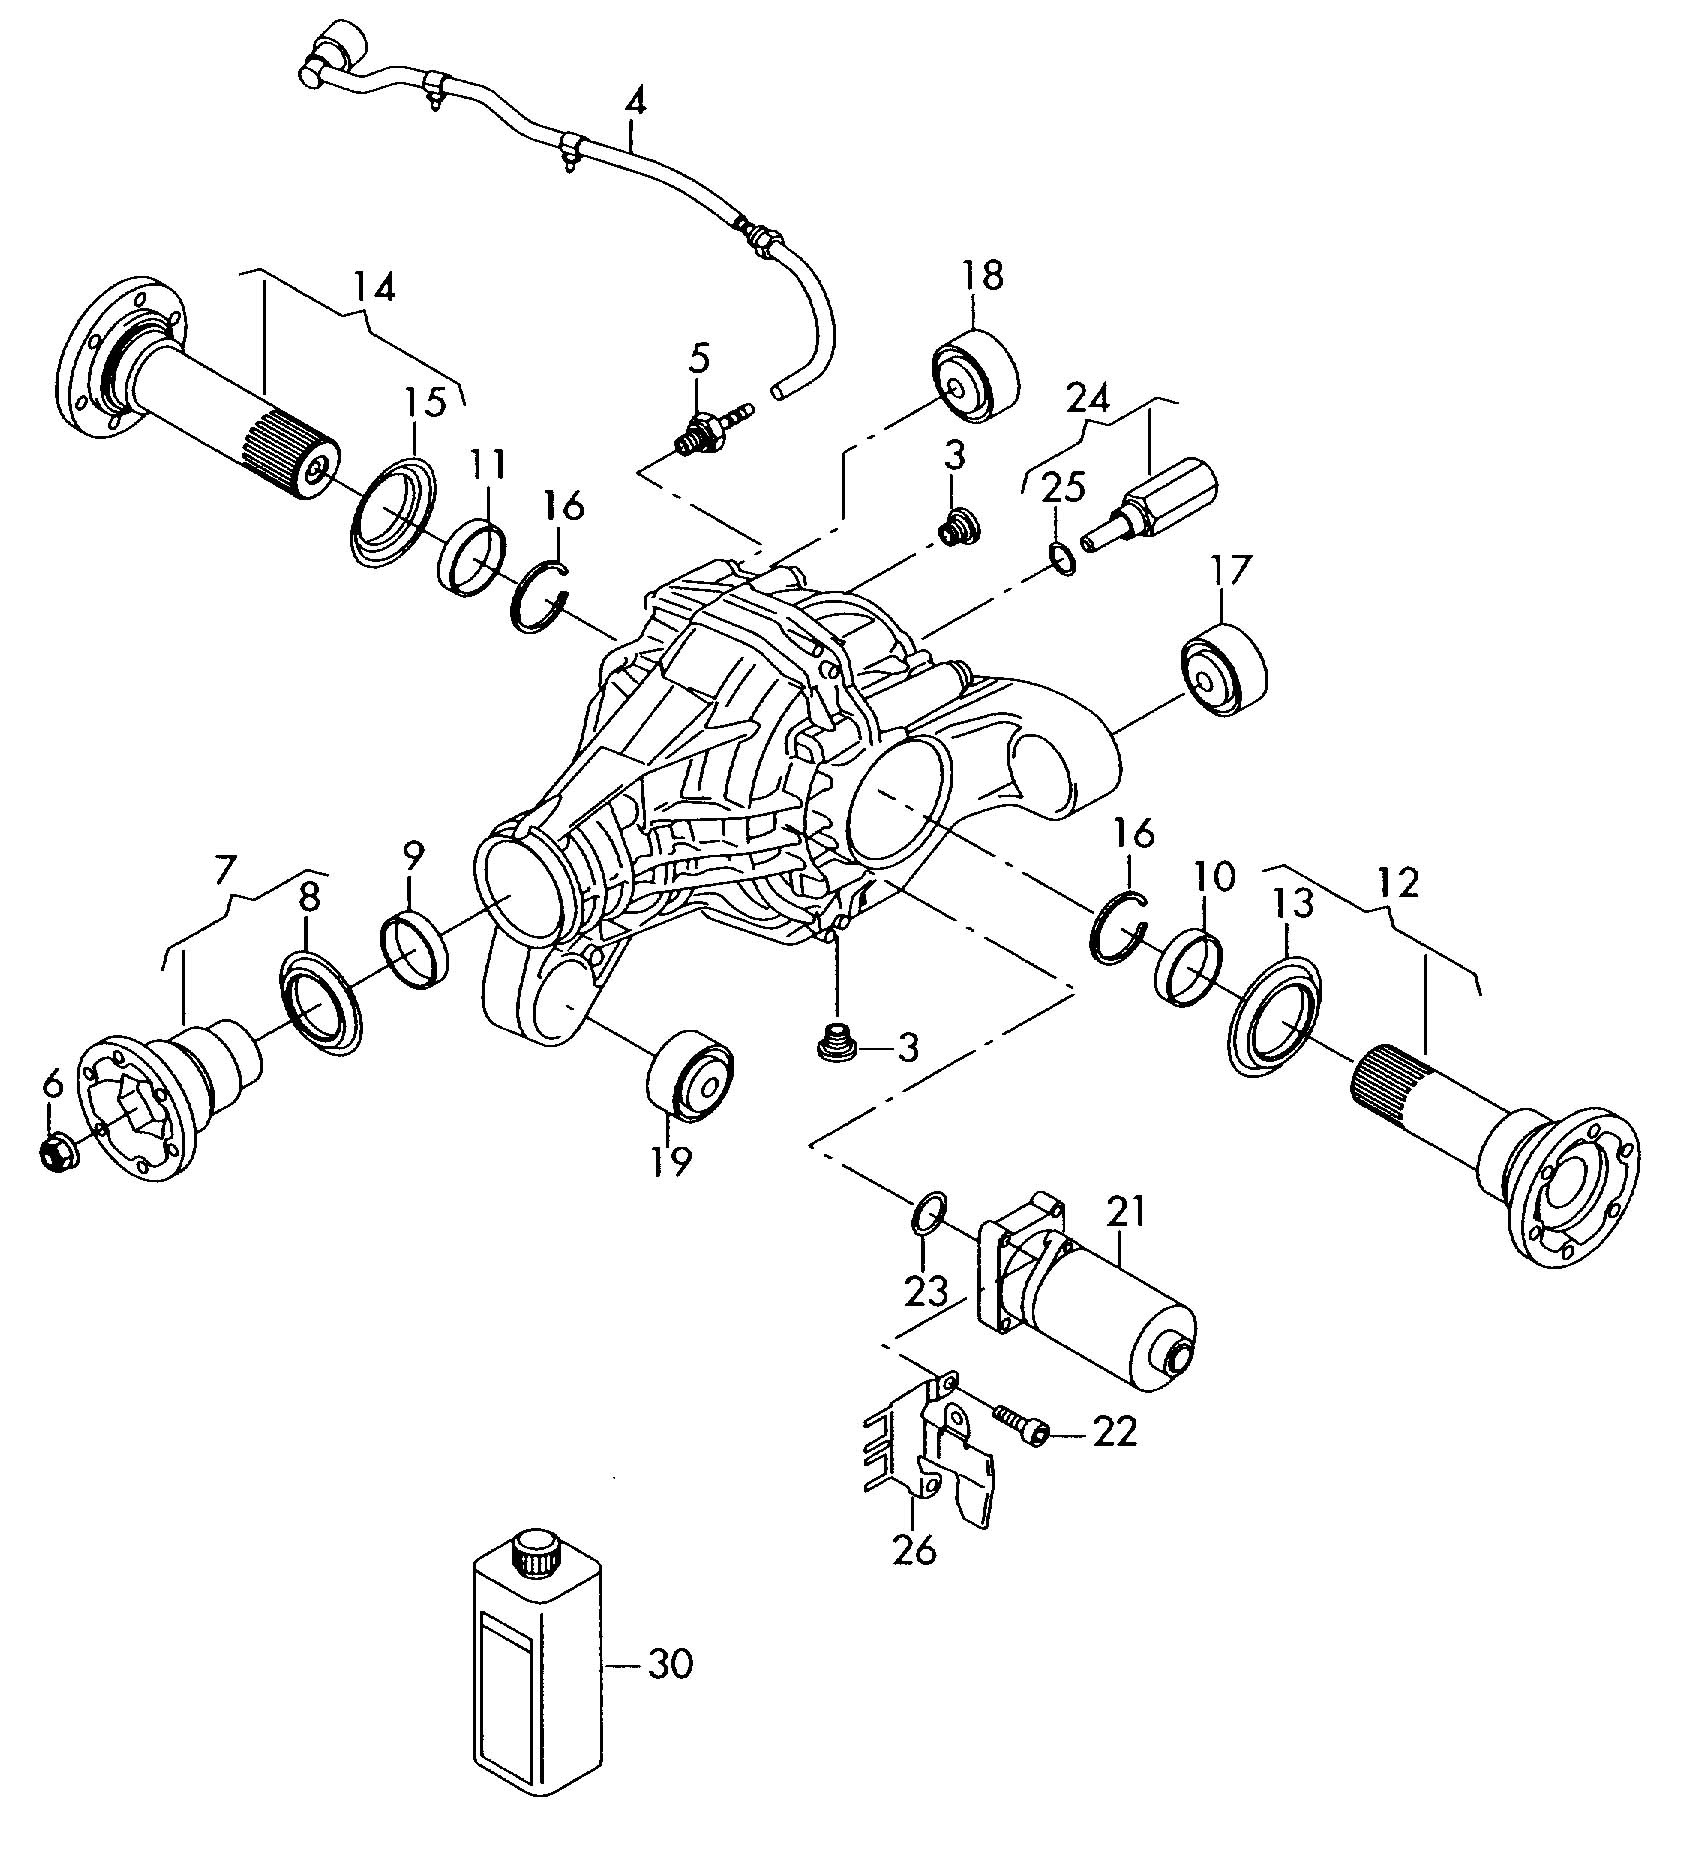 Volkswagen Touareg Motor for adjustment also use:. Tial